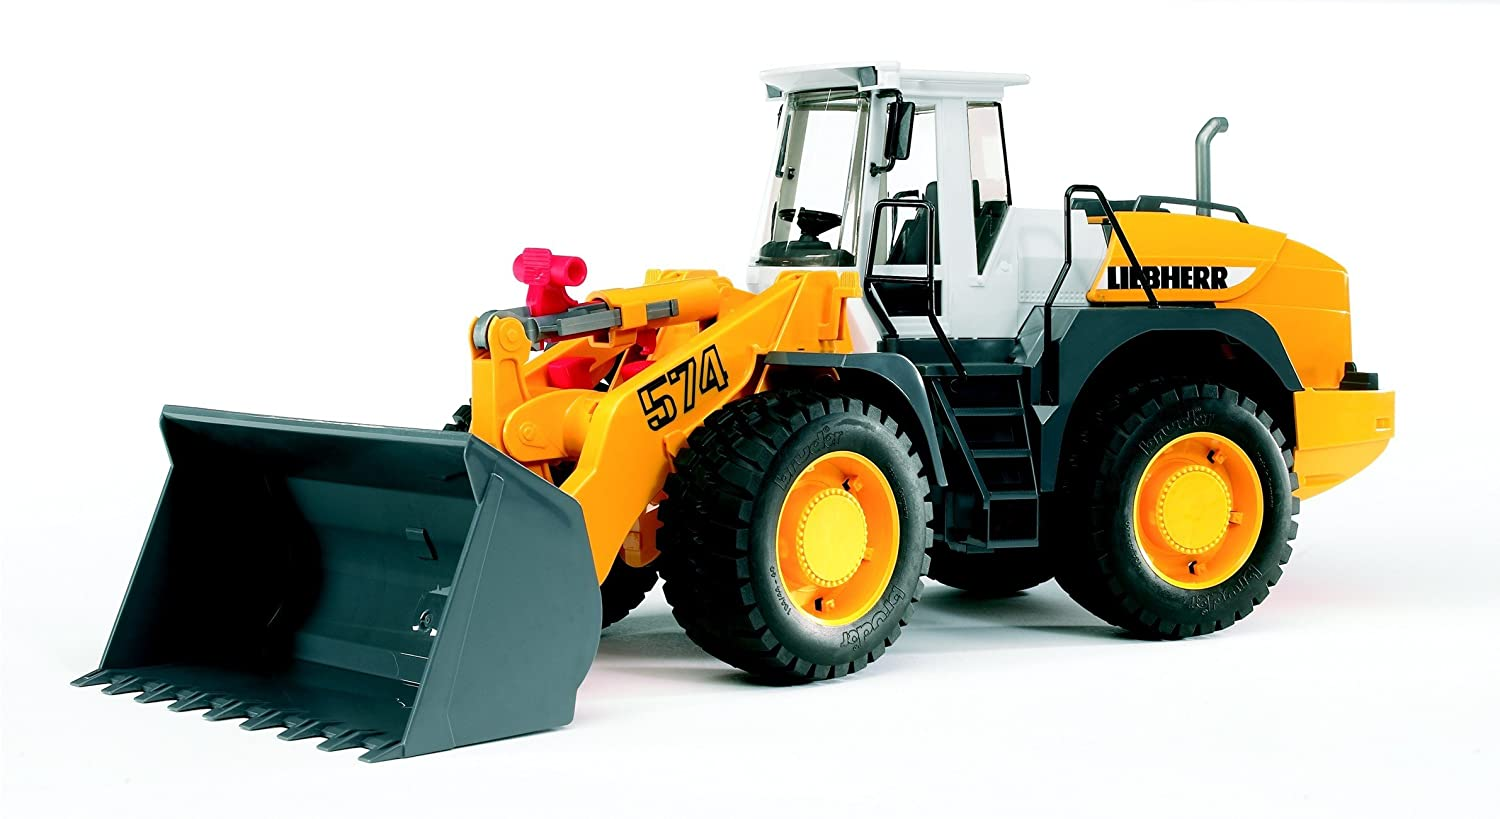 Bruder Construction Toys For Boys : Tractor toy vehicle construction excavator dump truck boys